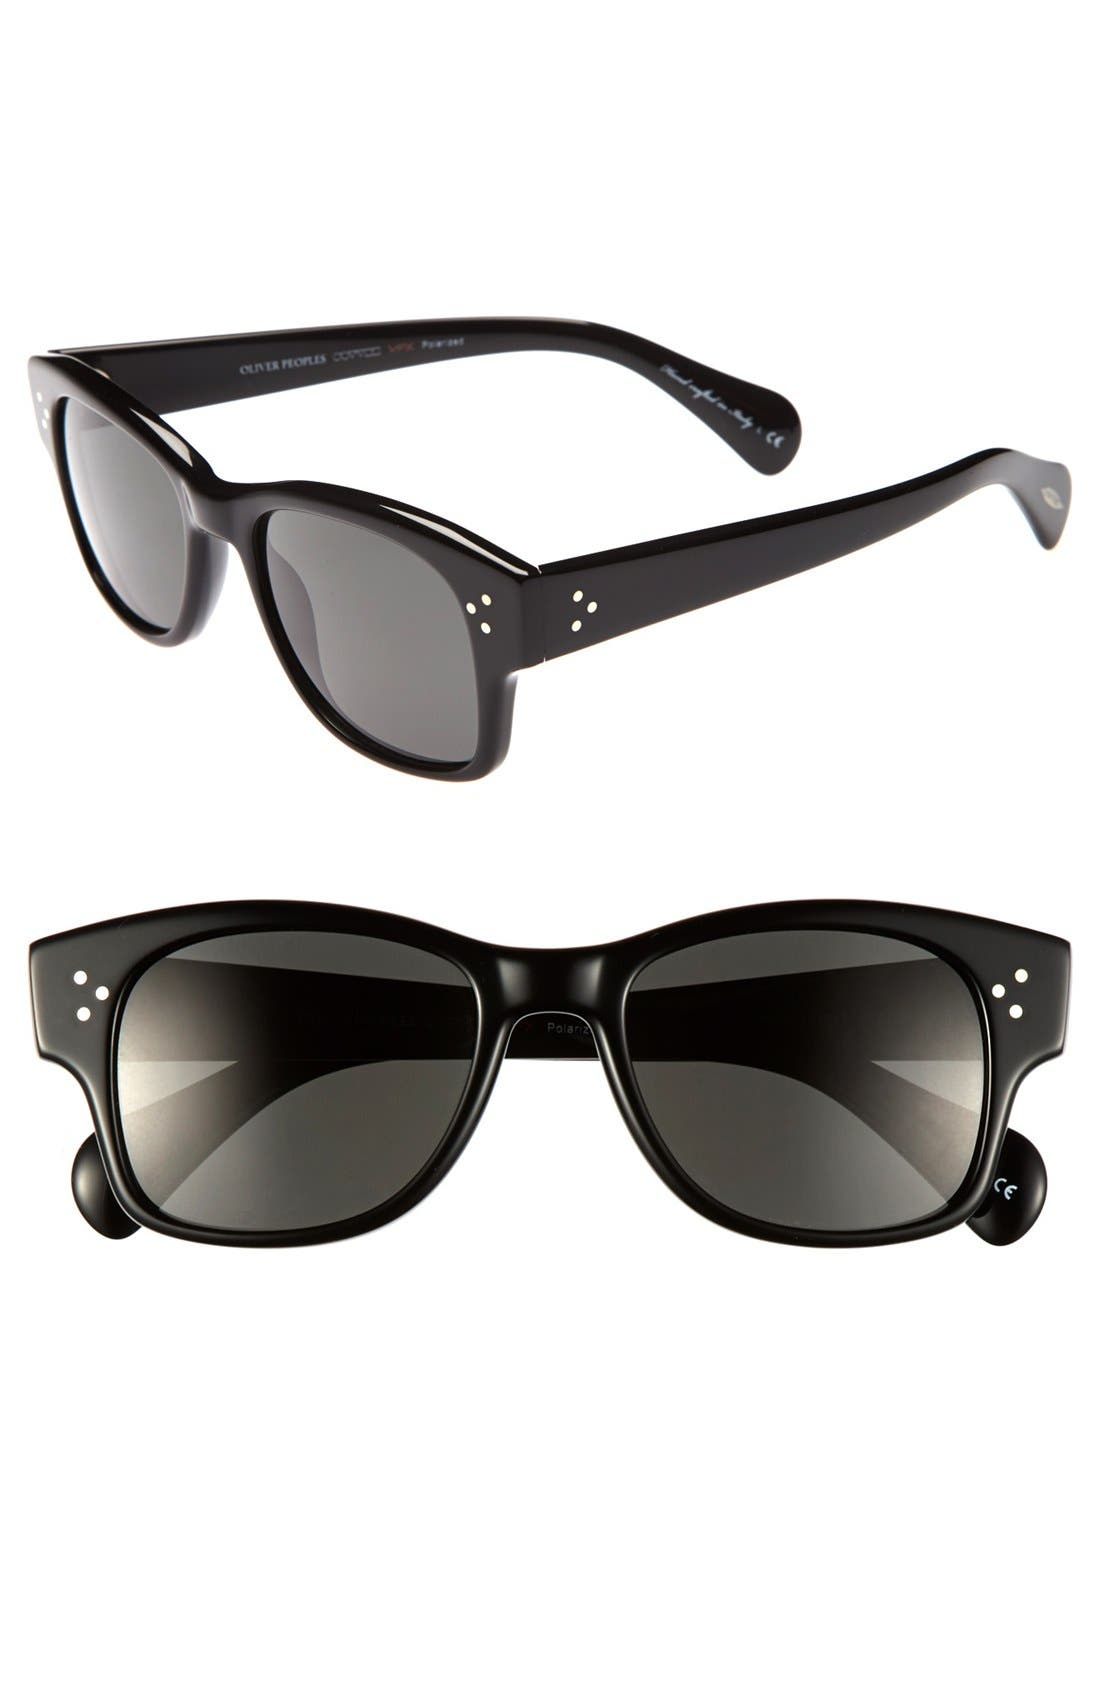 Main Image - Oliver Peoples 'Jannsson' 51mm Polarized Sunglasses